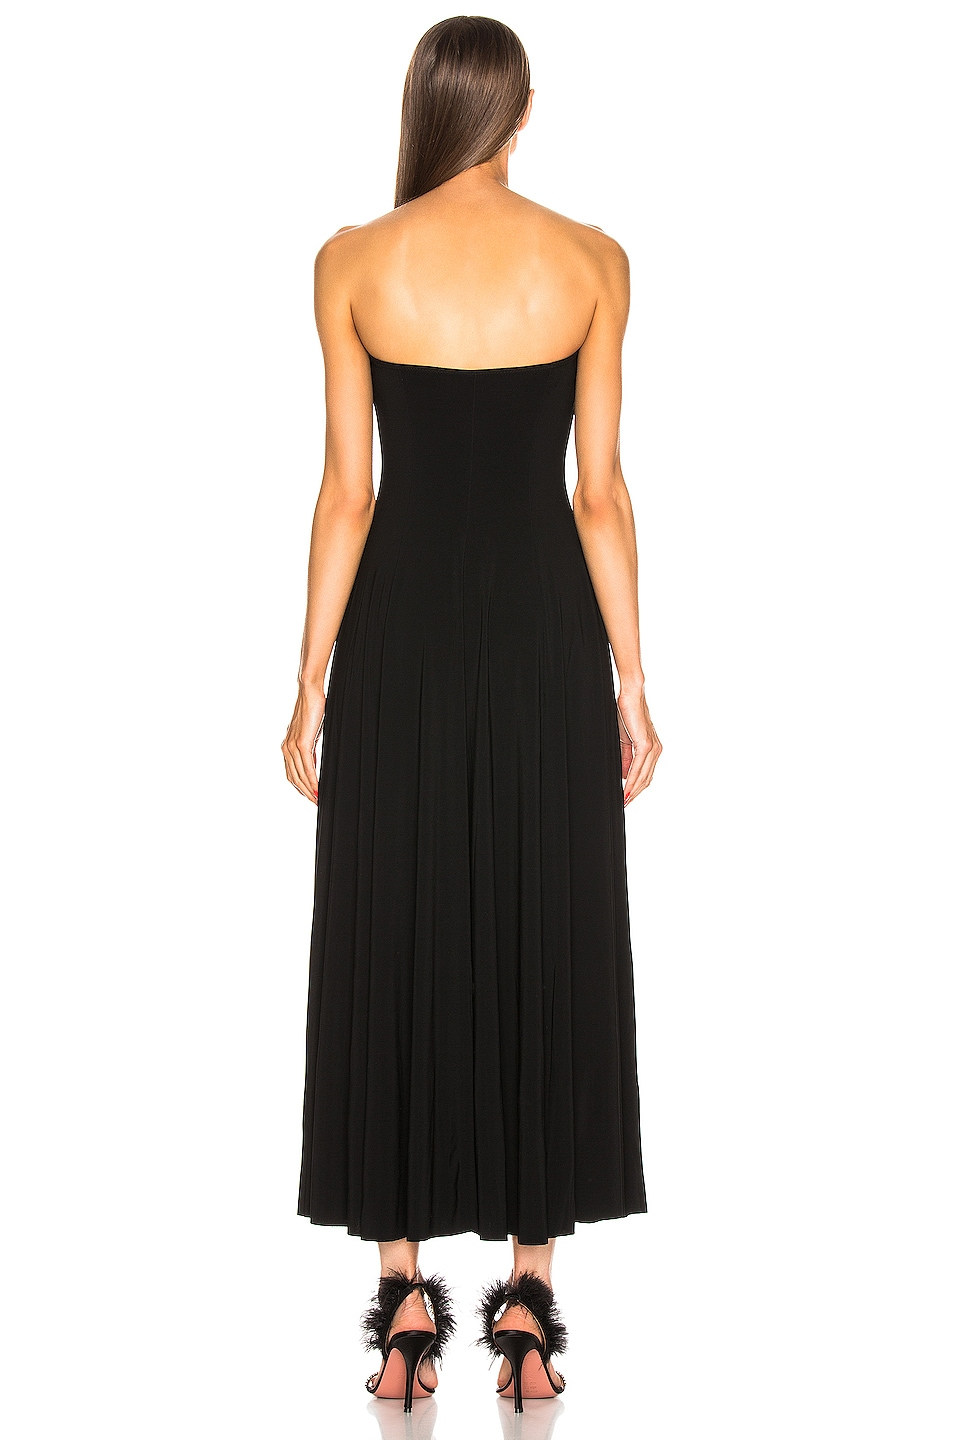 Image 3 of Norma Kamali Strapless Flared Midcalf Dress in Black